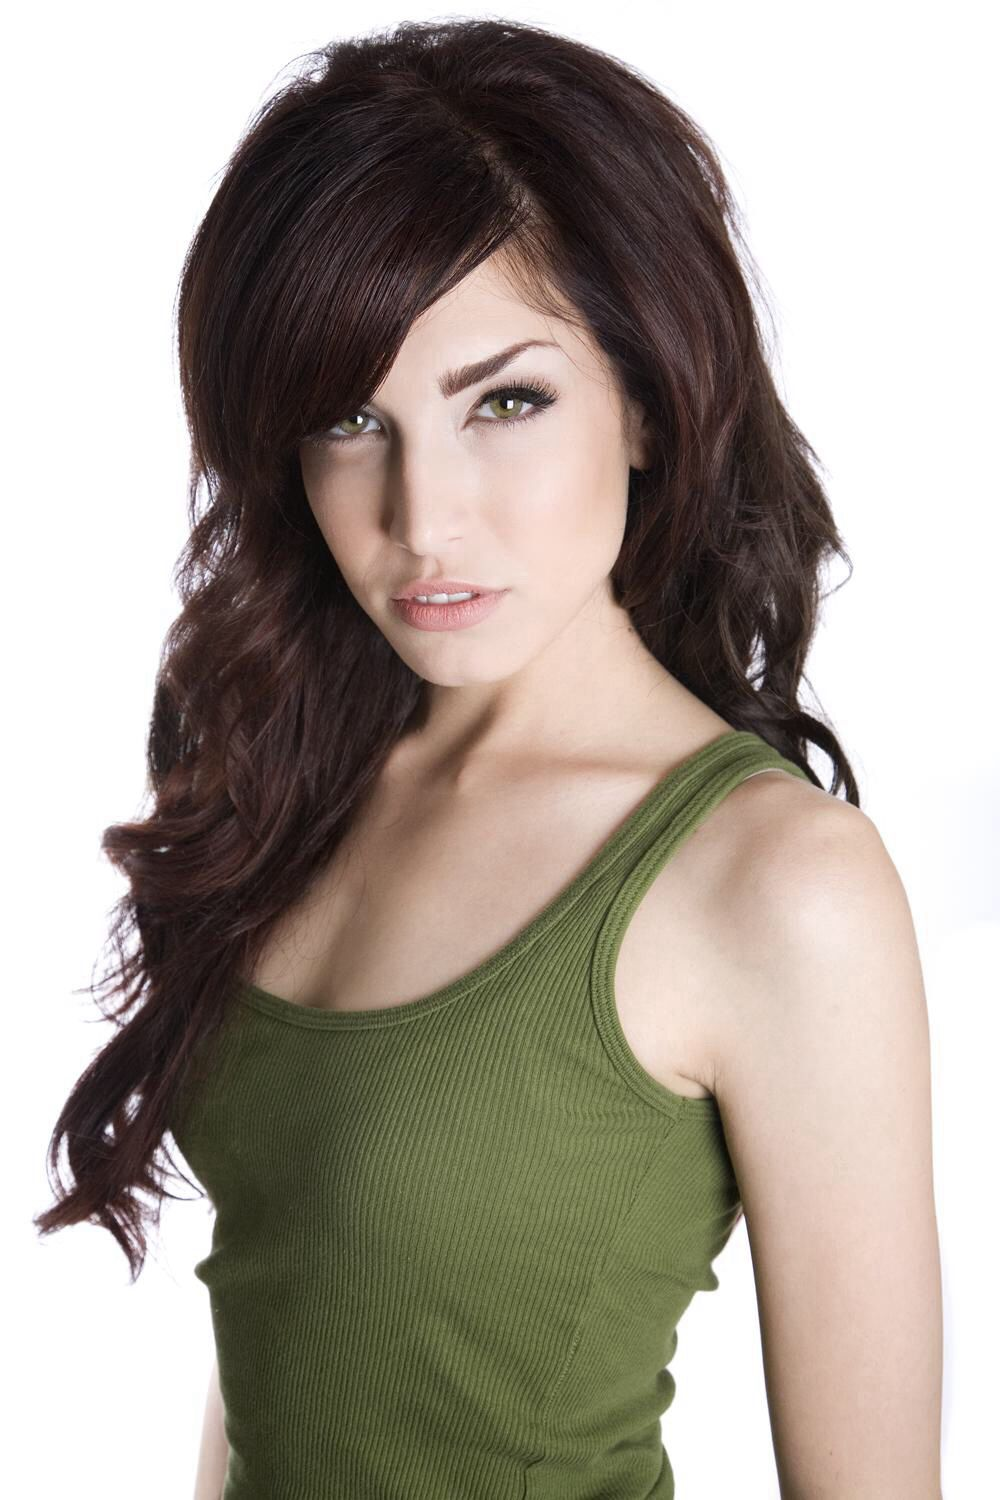 Assured, what sexy images of stevie ryan think, that